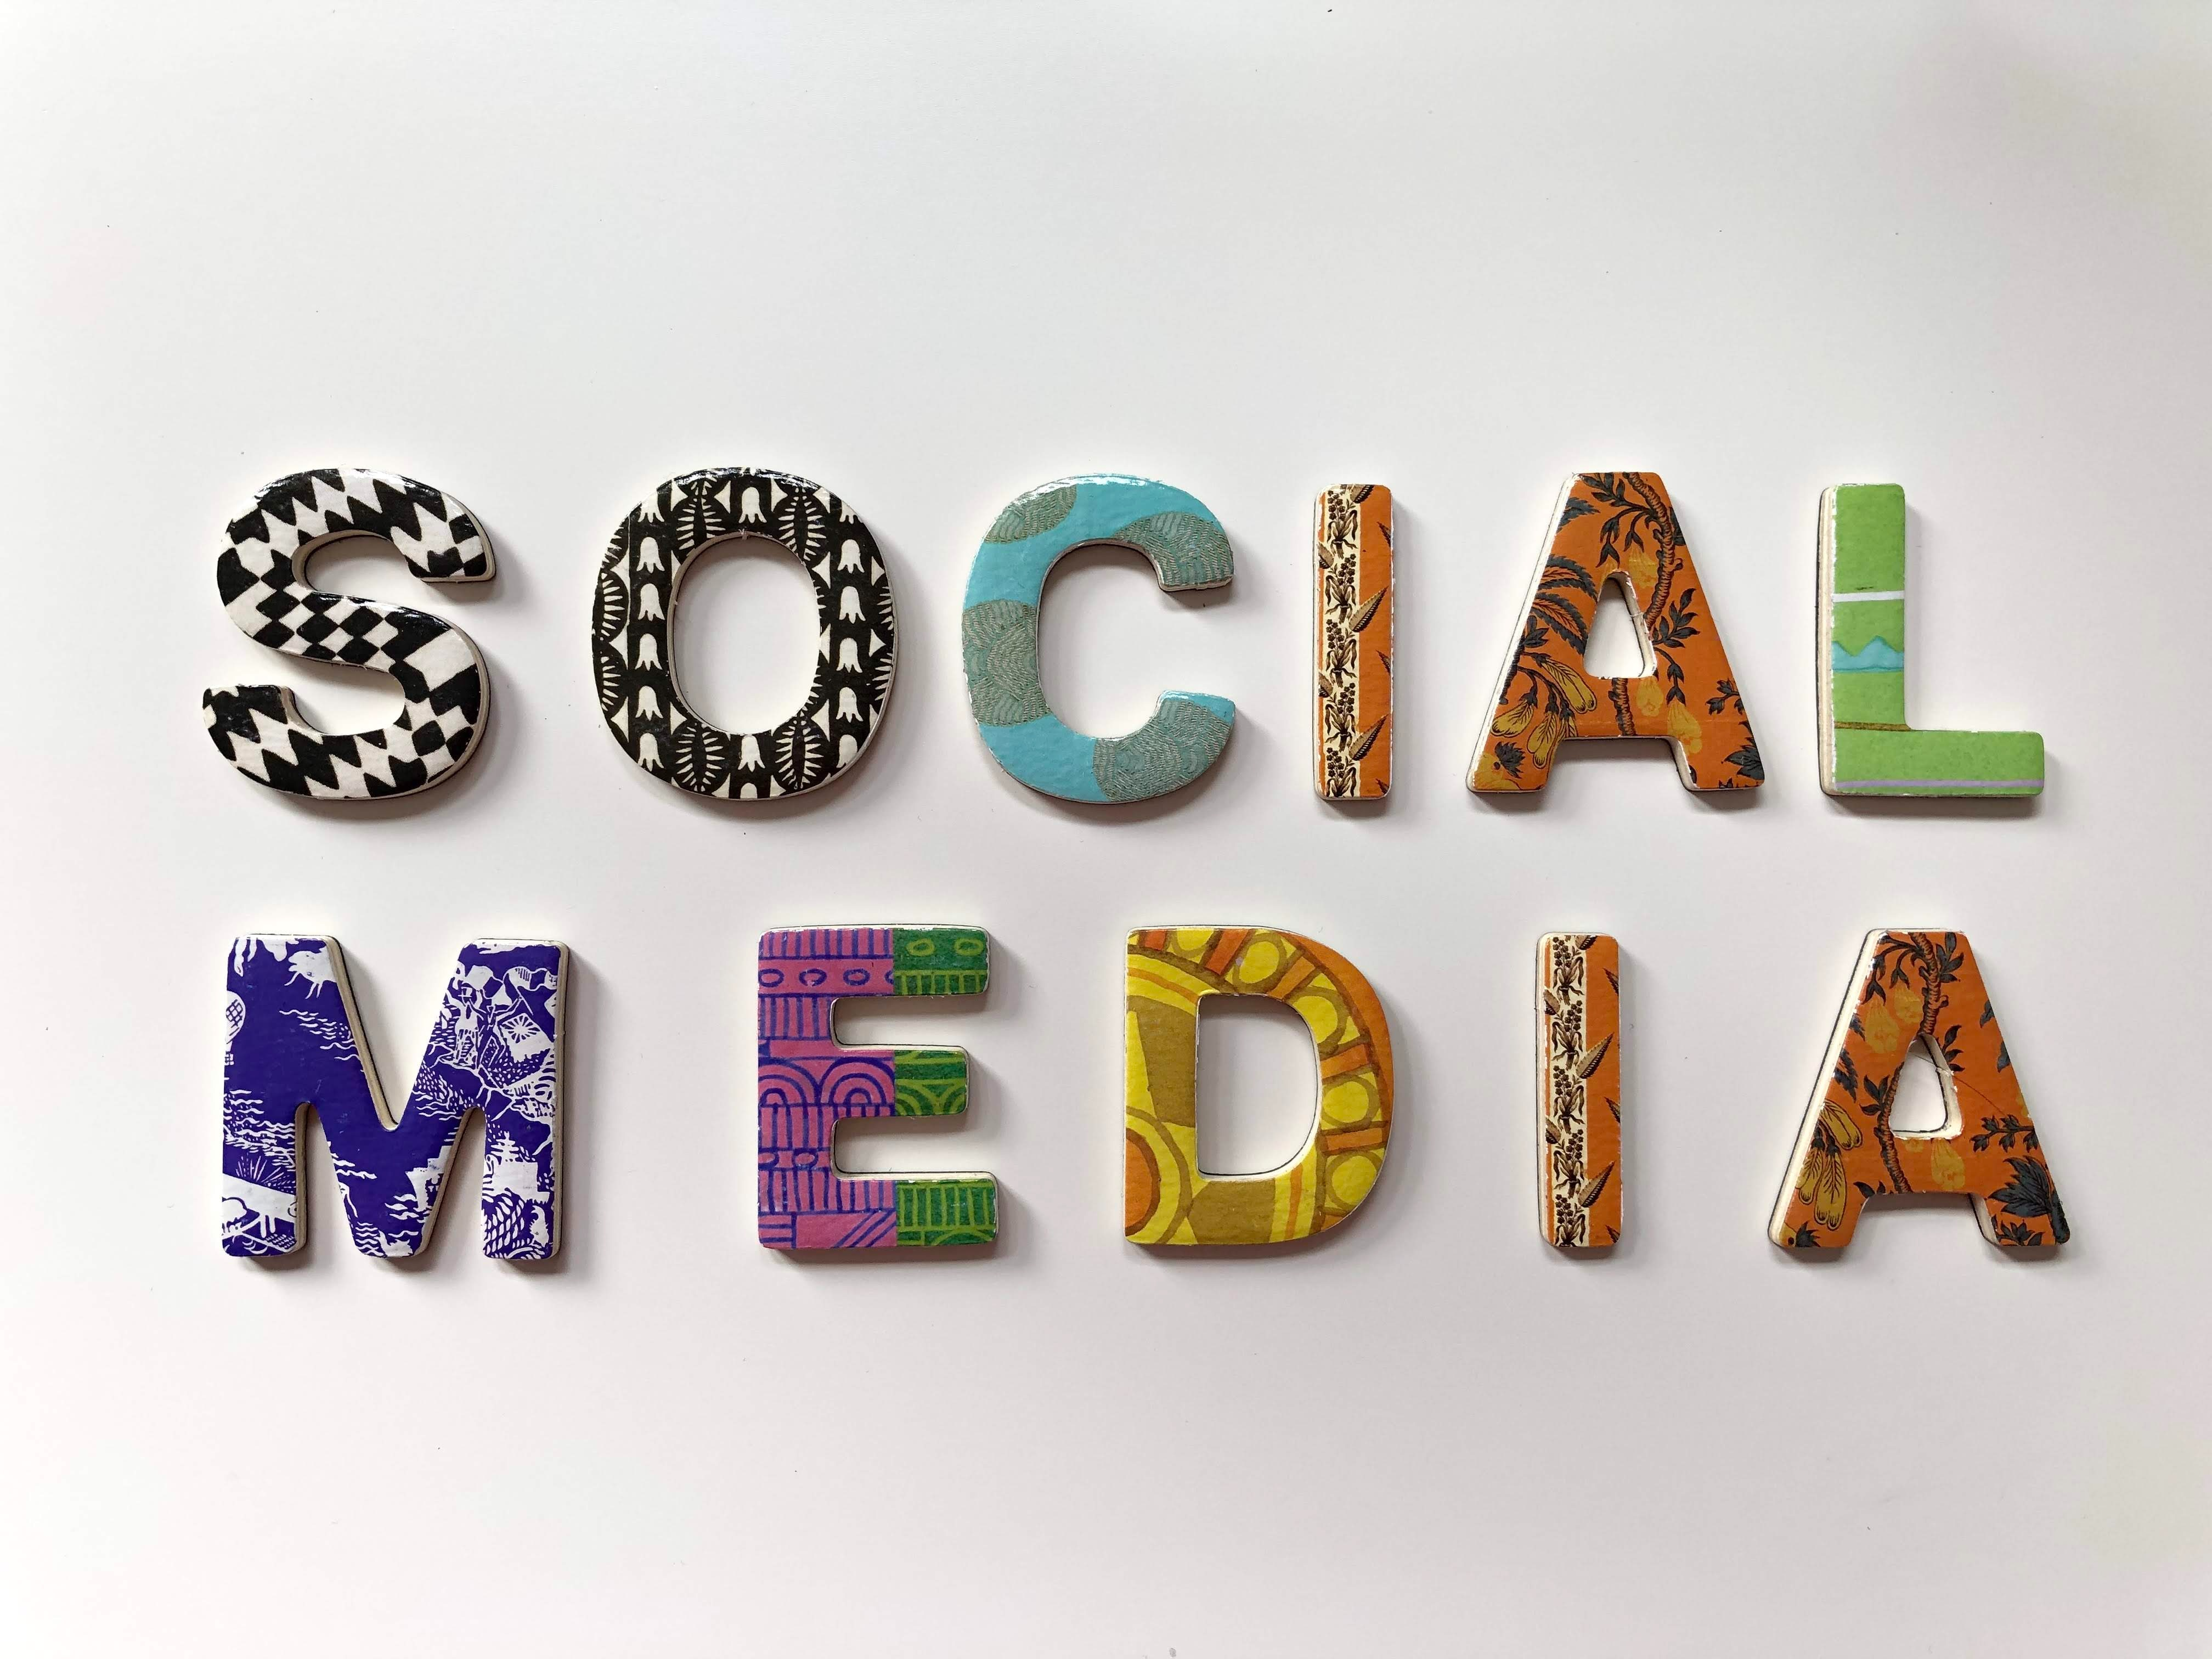 10 Social Media Marketing Tips That Can Give Your Brand Maximum Exposure